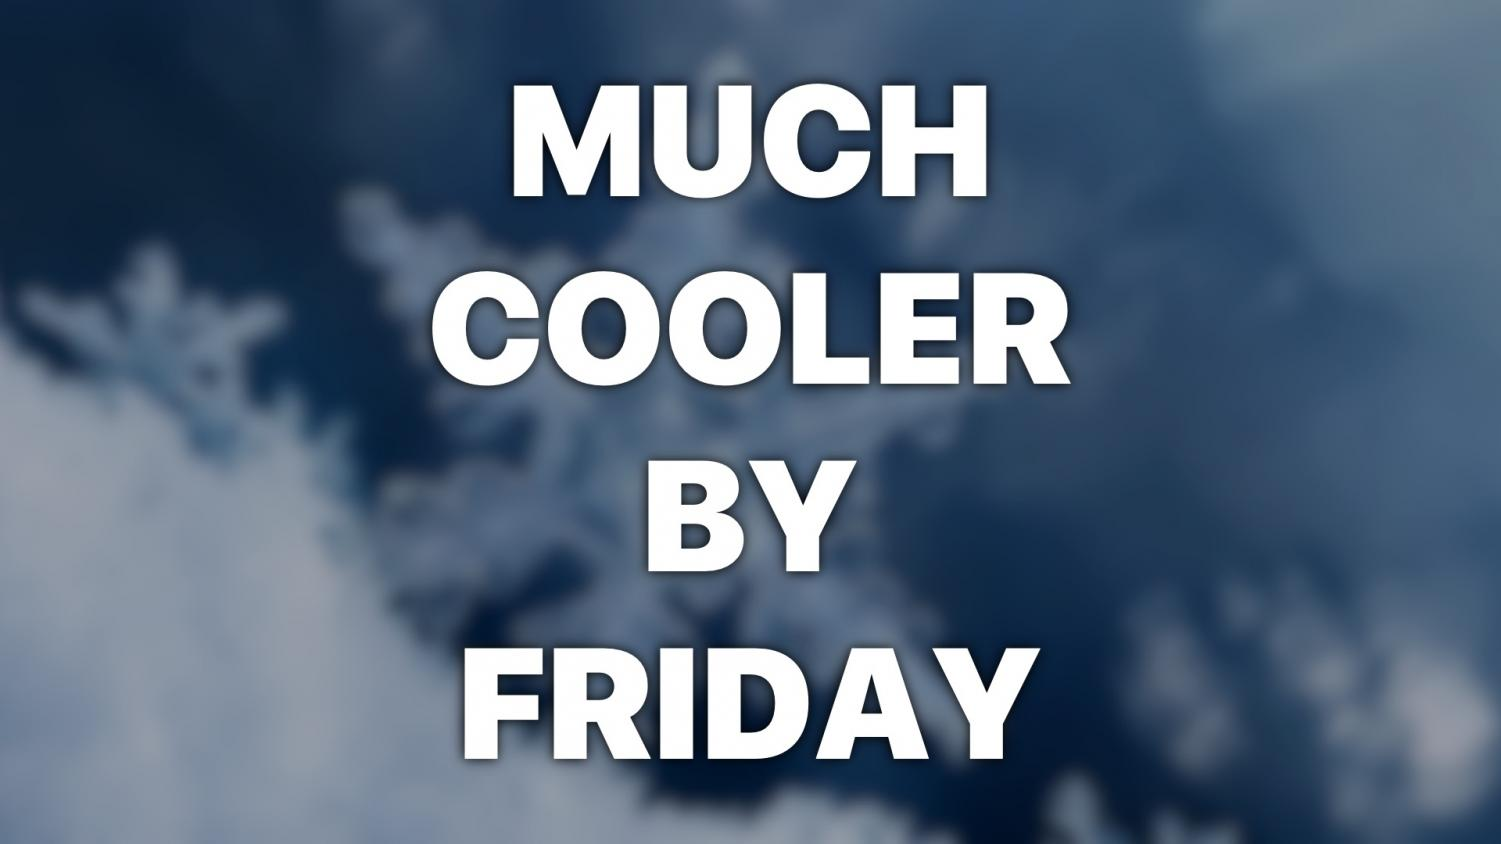 Much cooler by Friday